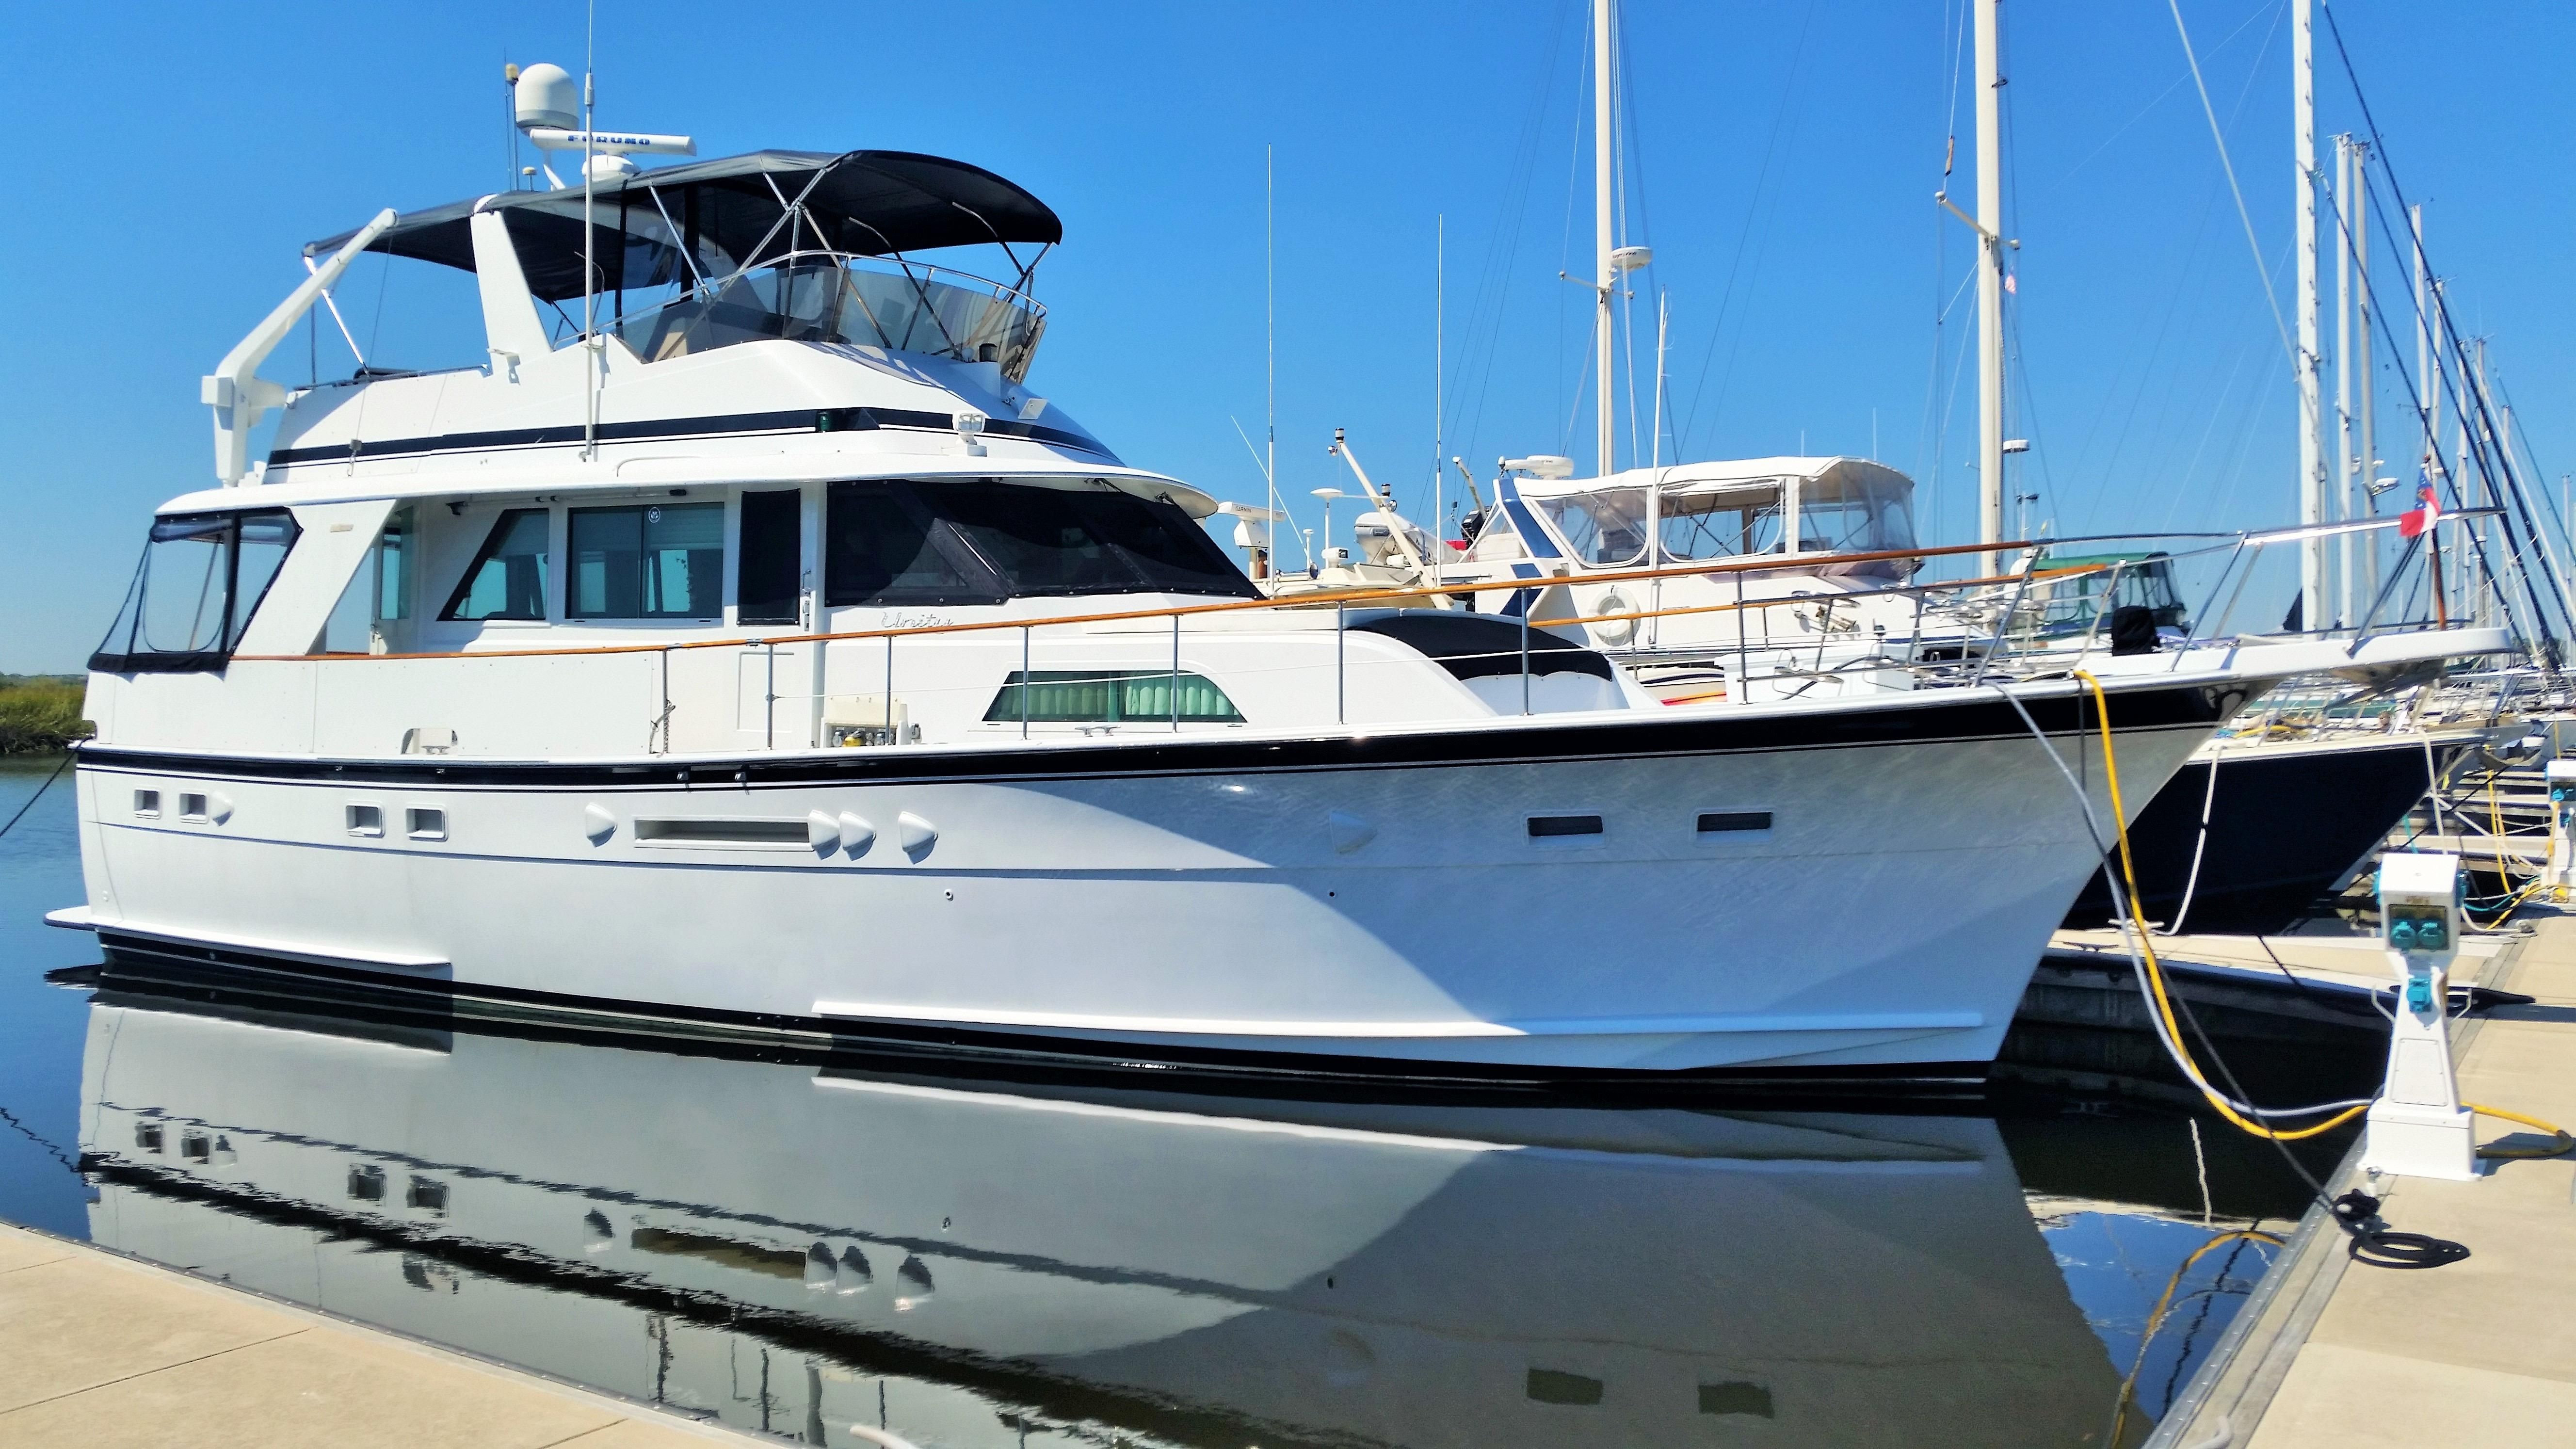 1987 hatteras 53 motor yacht power new and used boats for sale for 50 ft motor yachts for sale